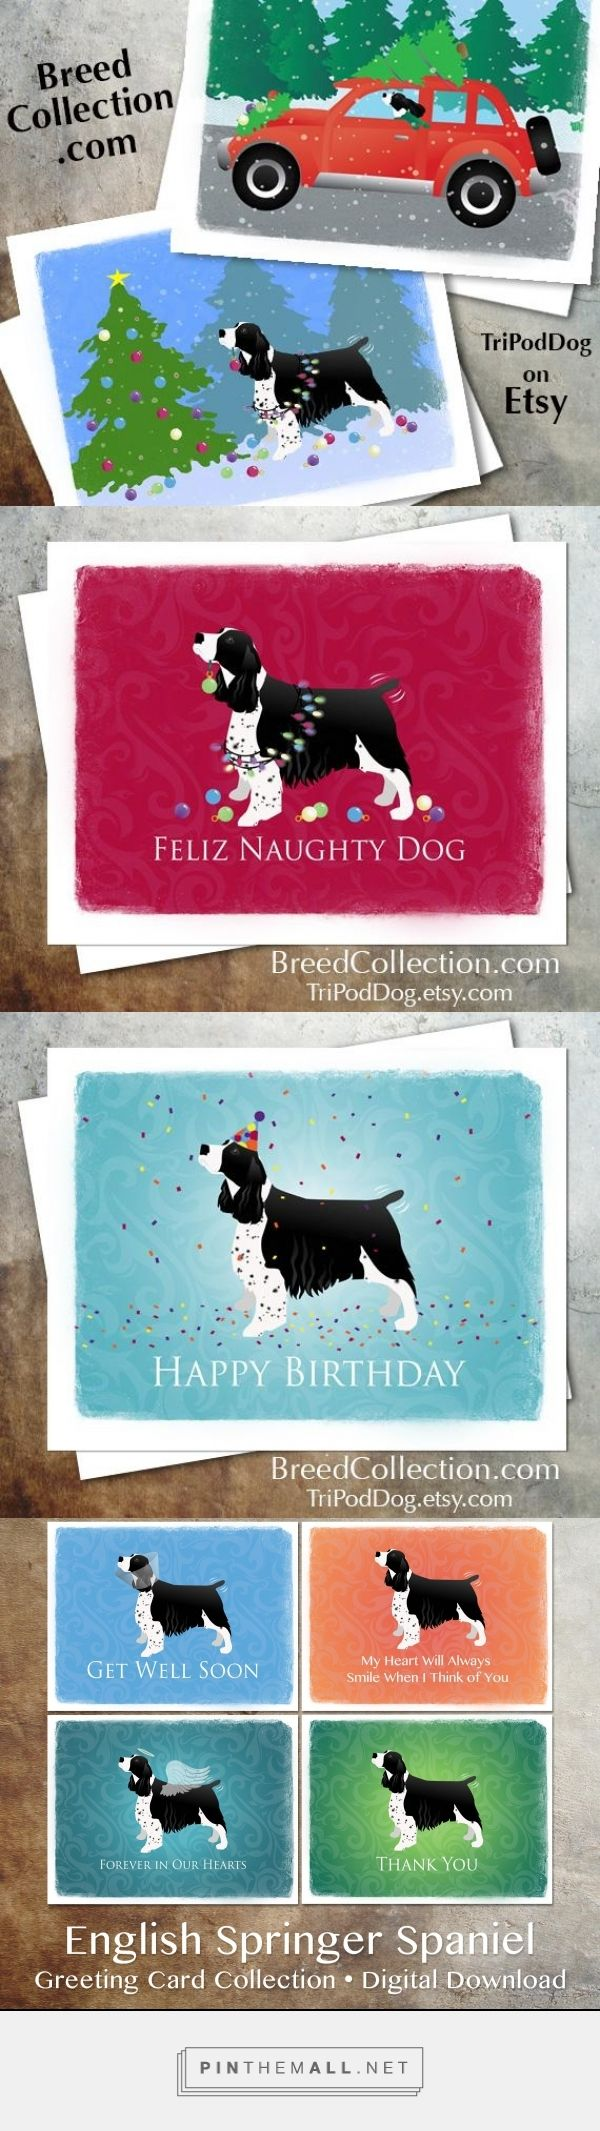 ❤ Black English Springer Spaniel Dog Christmas Cards from the Breed Collection - Also available.... Birthday, Thank You, Thinking of You, Get Well Soon, Pet Loss Sympathy - Digital Download Printable - on Etsy